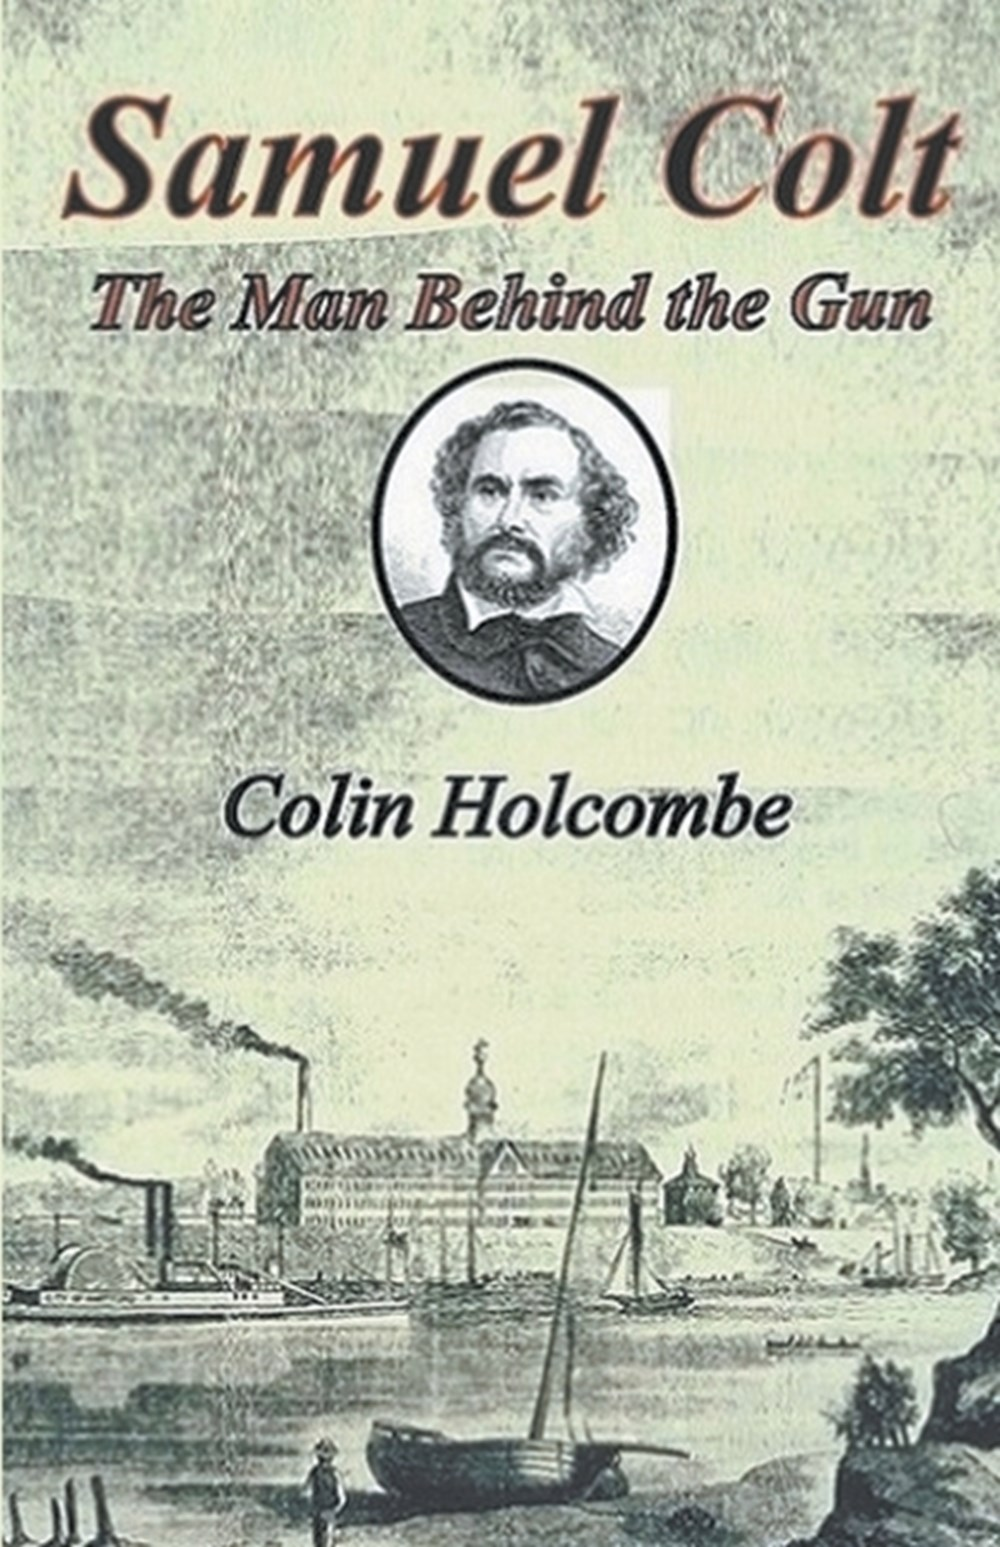 Samuel Colt The Man Behind the Gun